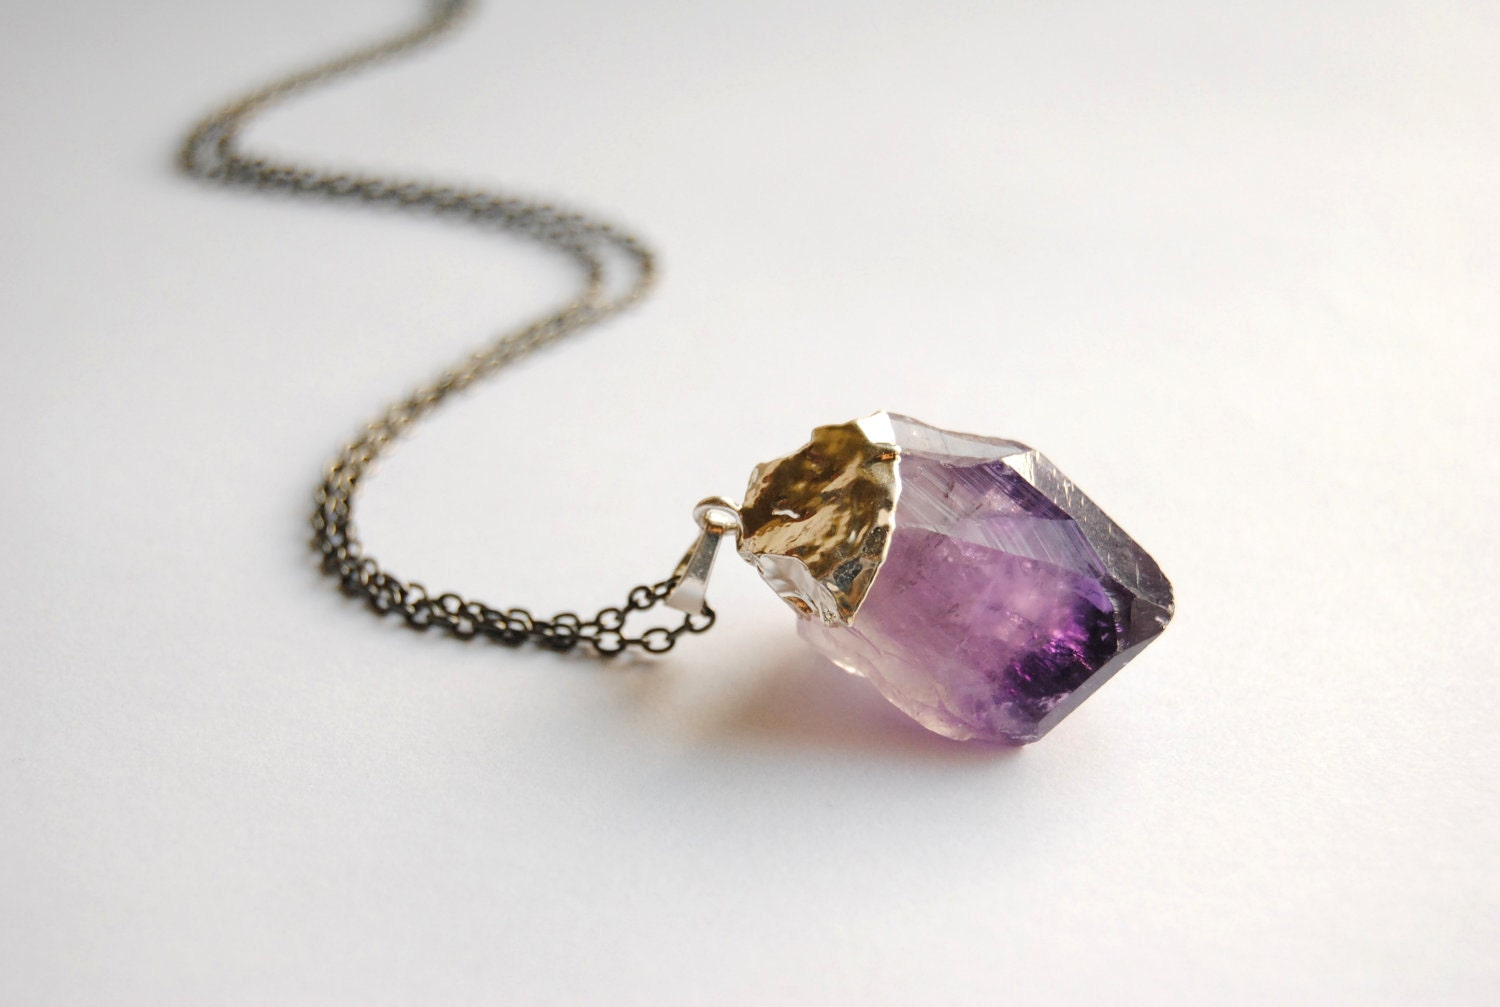 SALE Raw Amethyst Crystal Necklace Small Silver Plated